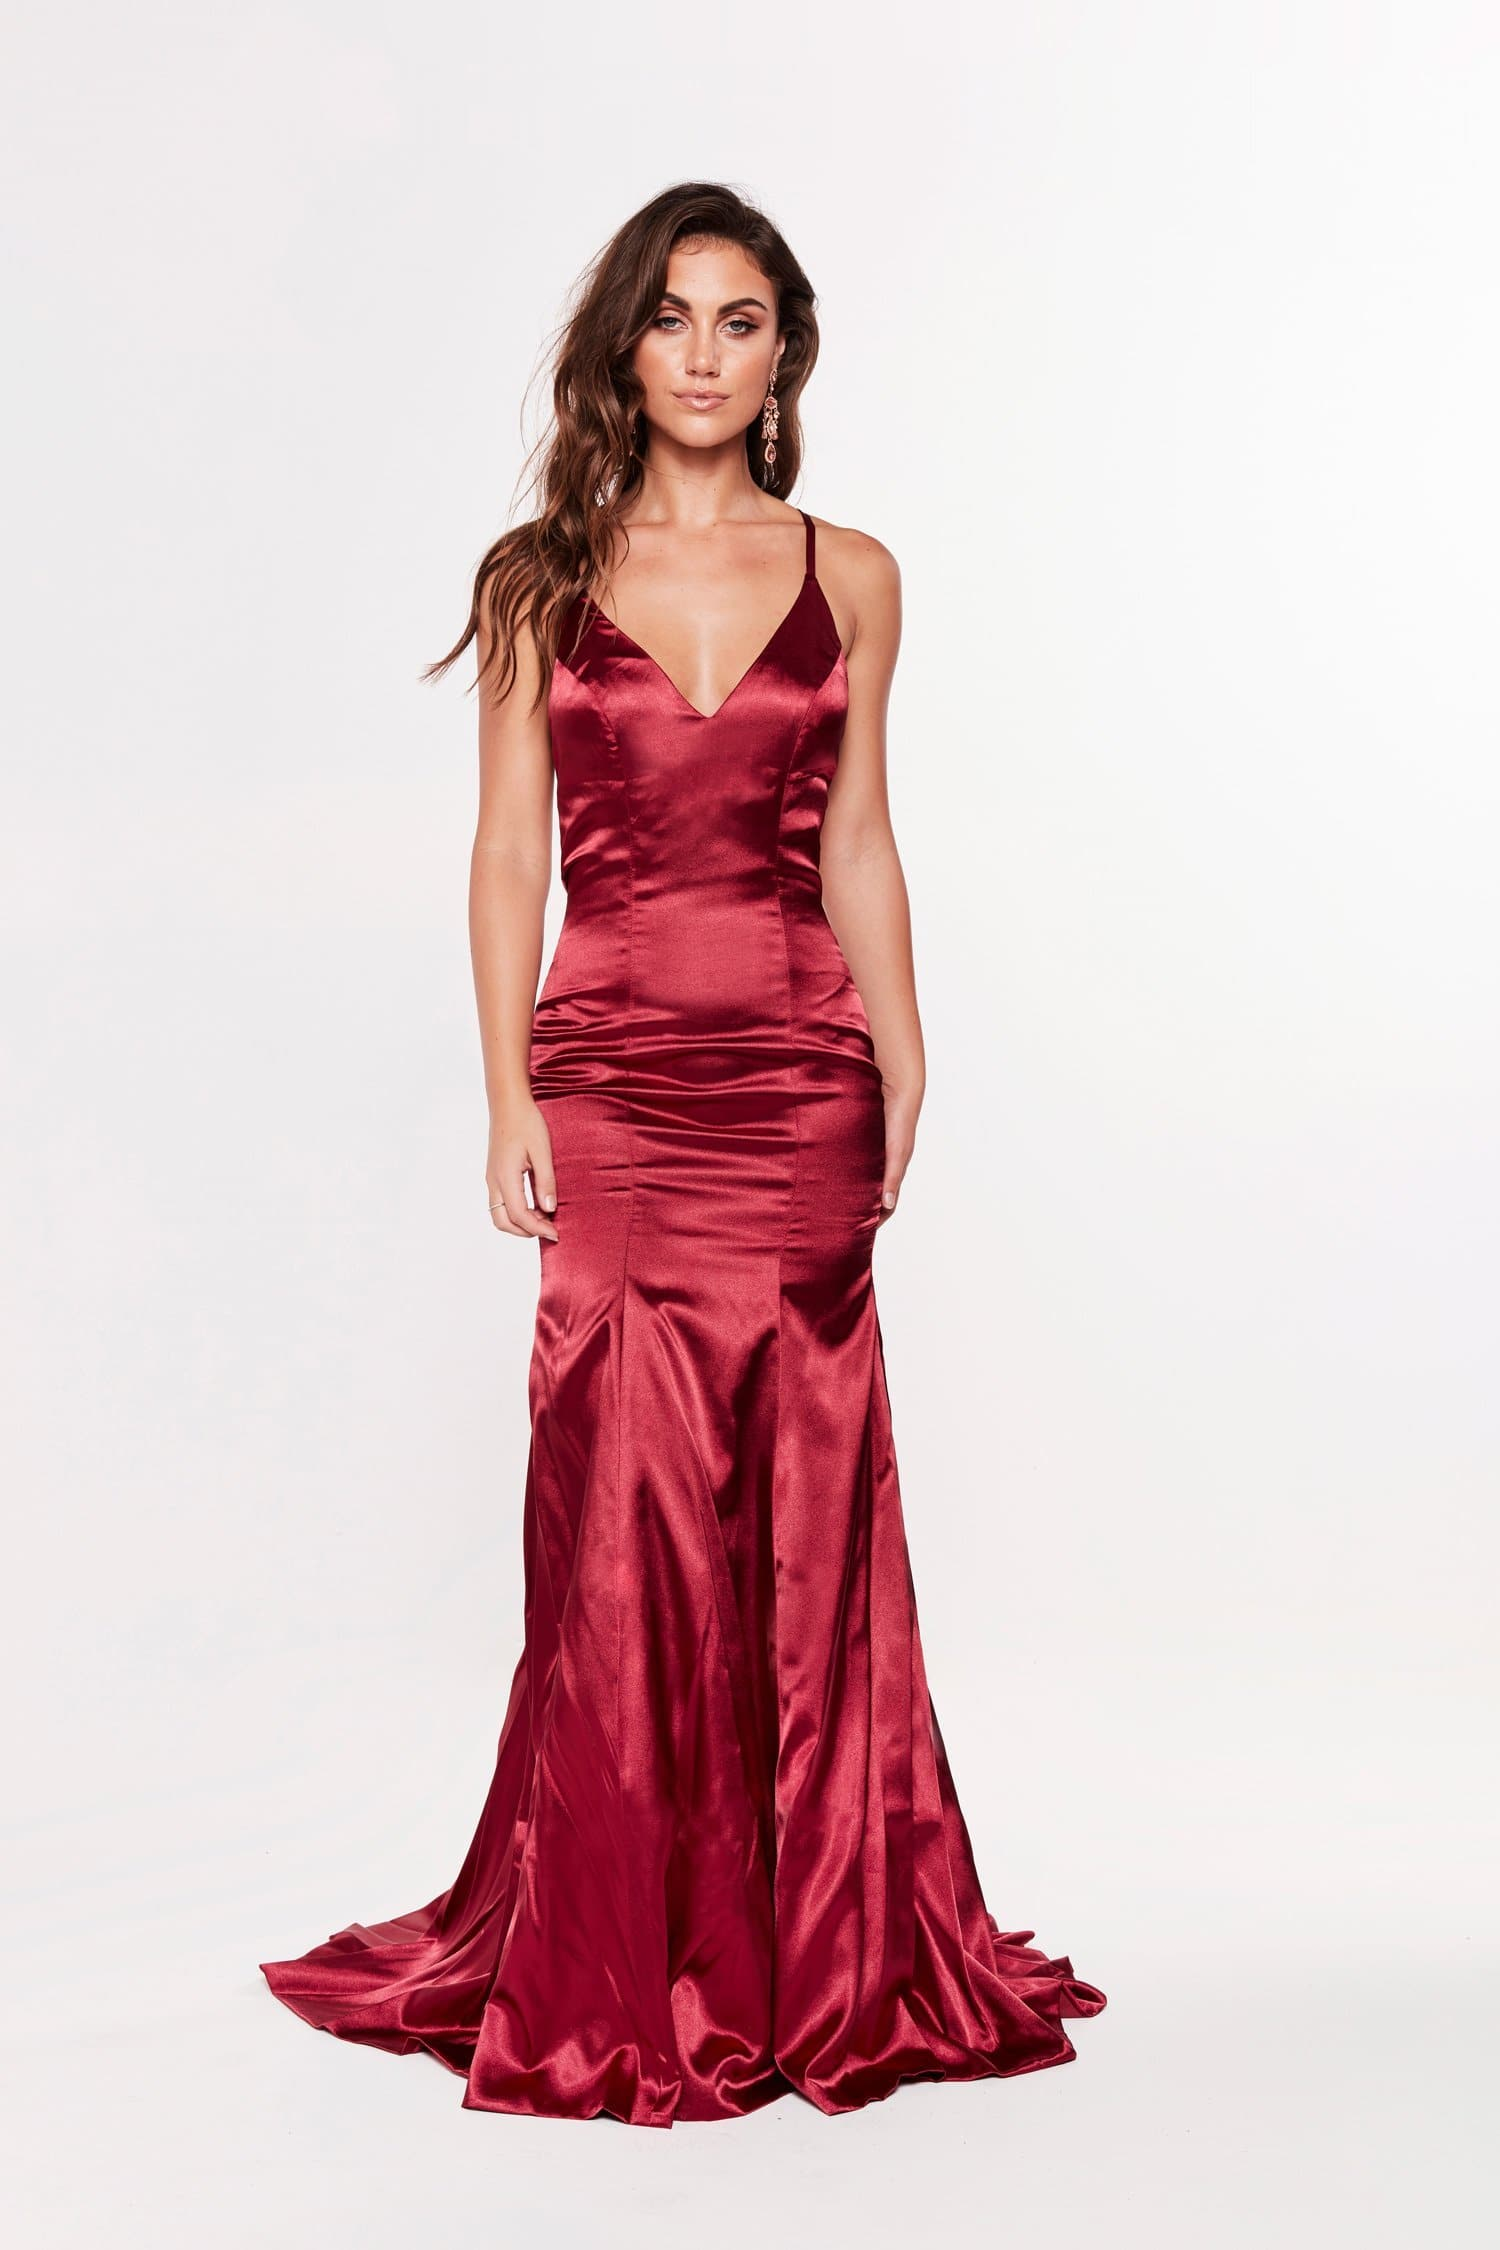 A&N Bahar - Satin Gown with Lace Up Back and V Neckline in Burgundy